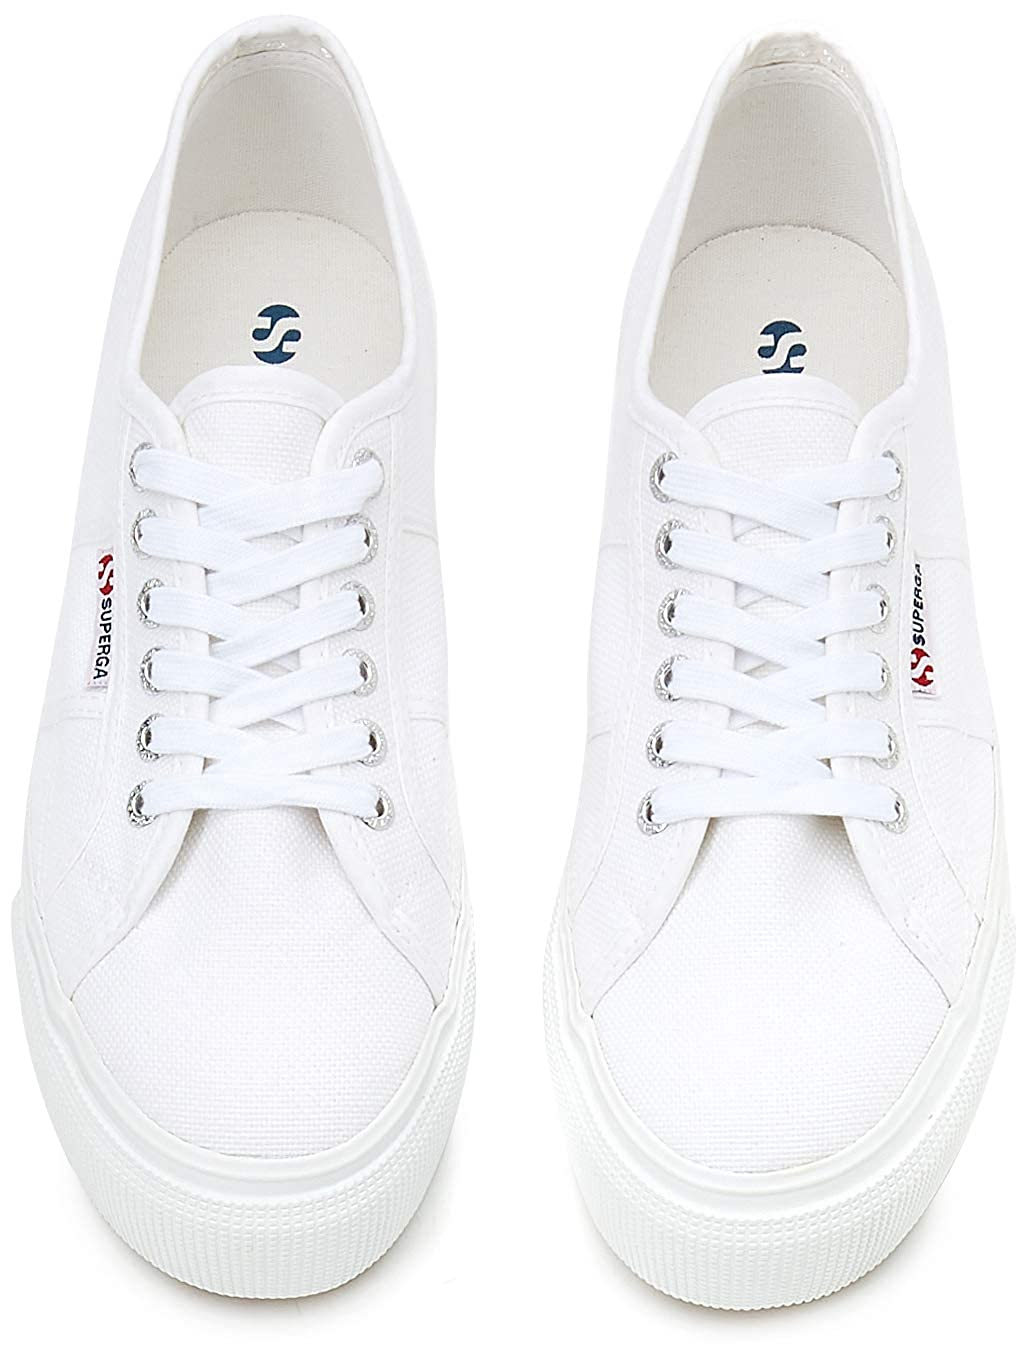 a188202ab83c90 Superga 2790acotw Linea Up and Down, Baskets Basses Femme: Amazon.fr:  Chaussures et Sacs